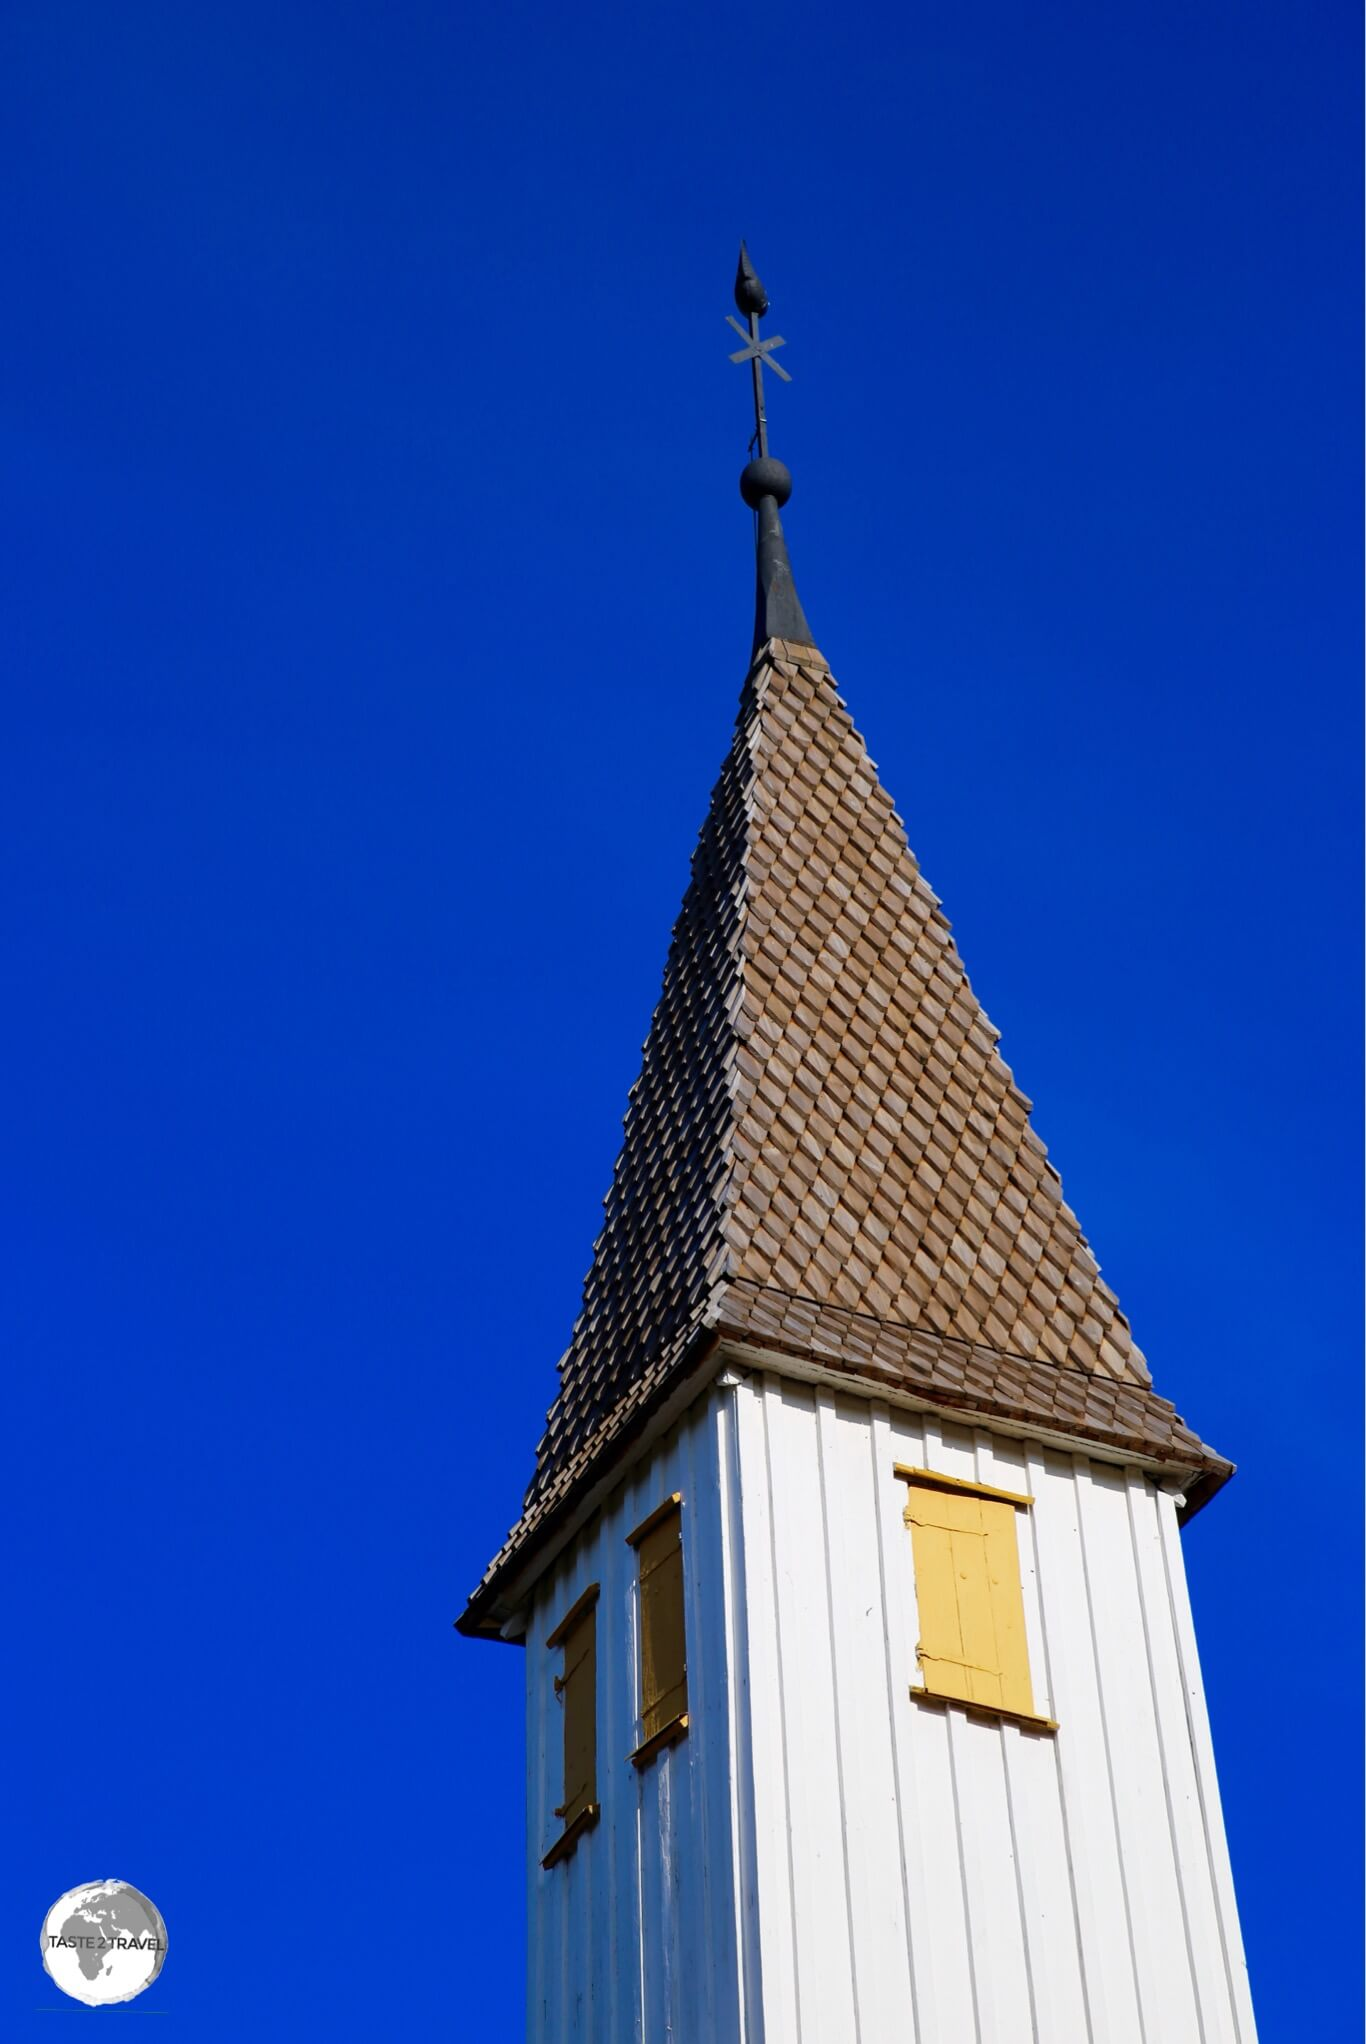 A church steeple on the Åland islands.